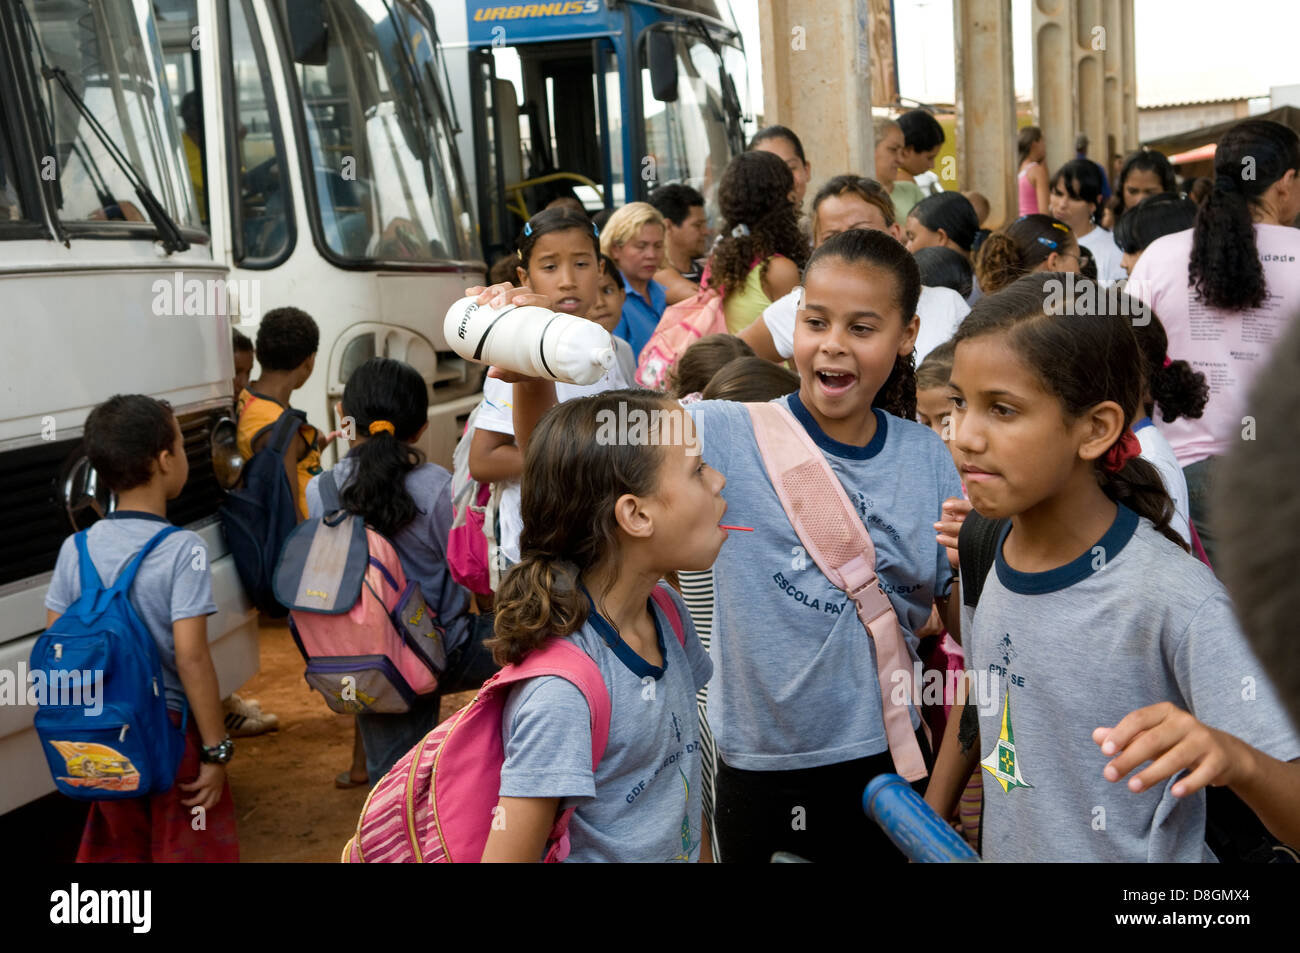 Brazilian school children on their way home from school. - Stock Image